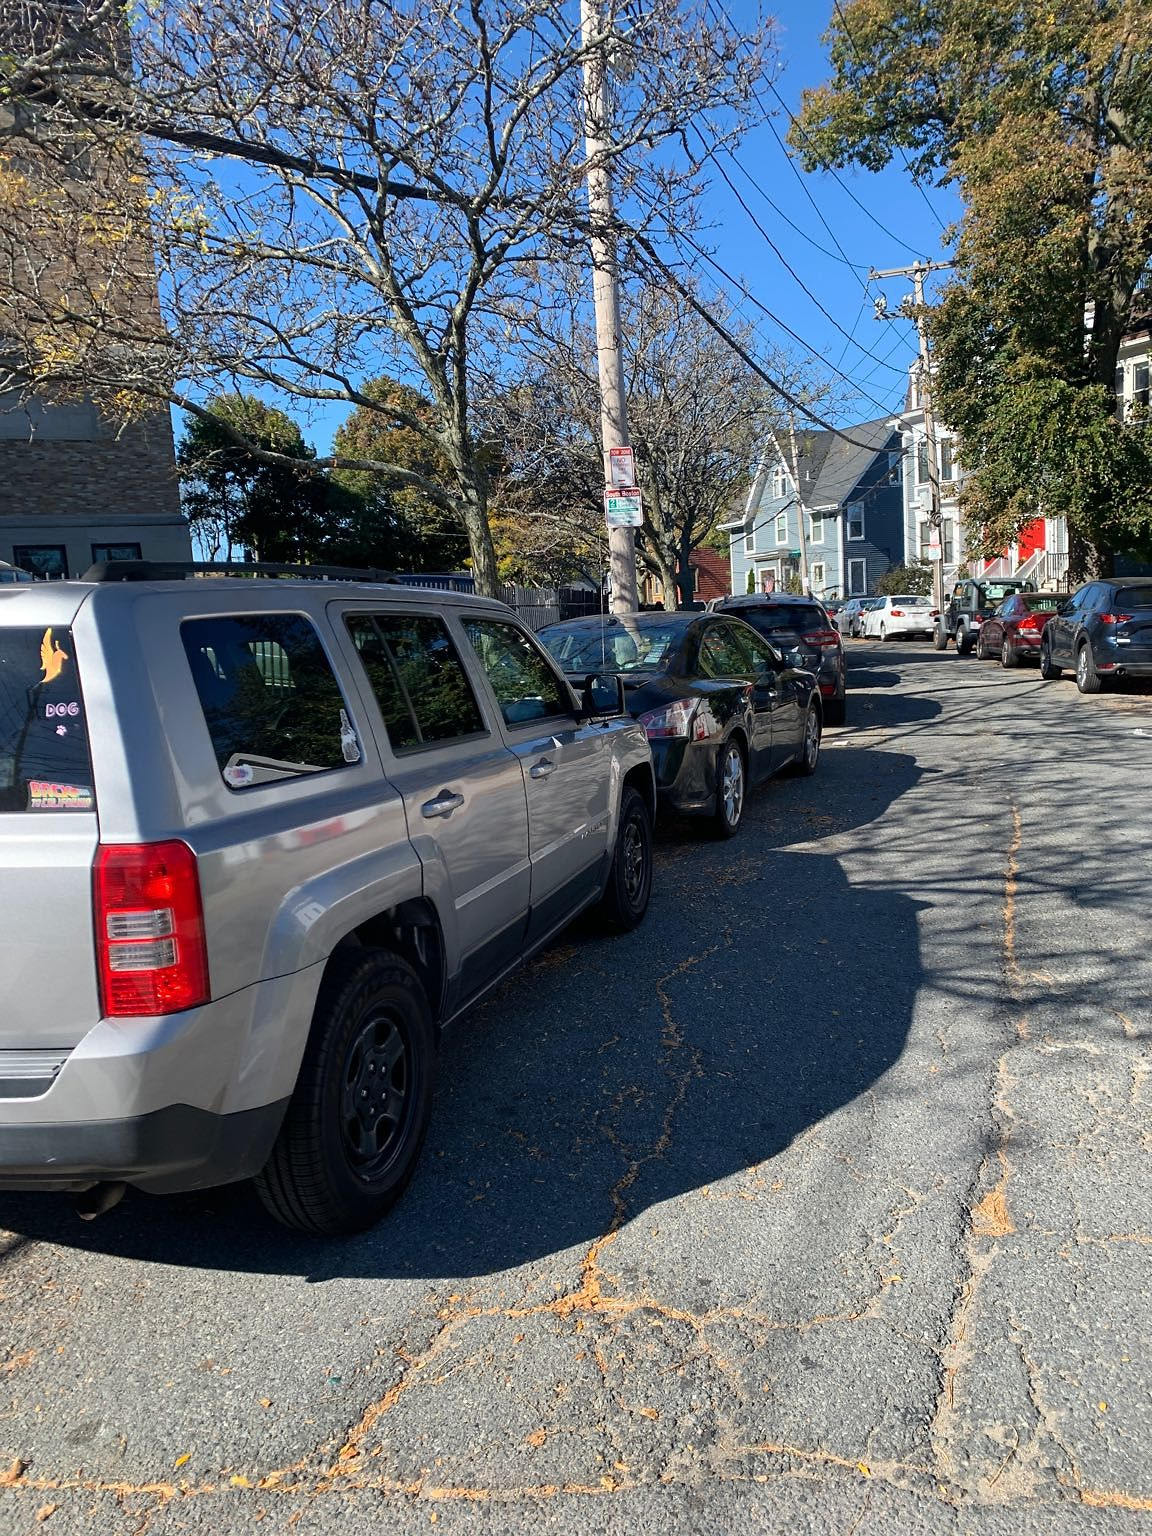 Two cars parked in tow zone